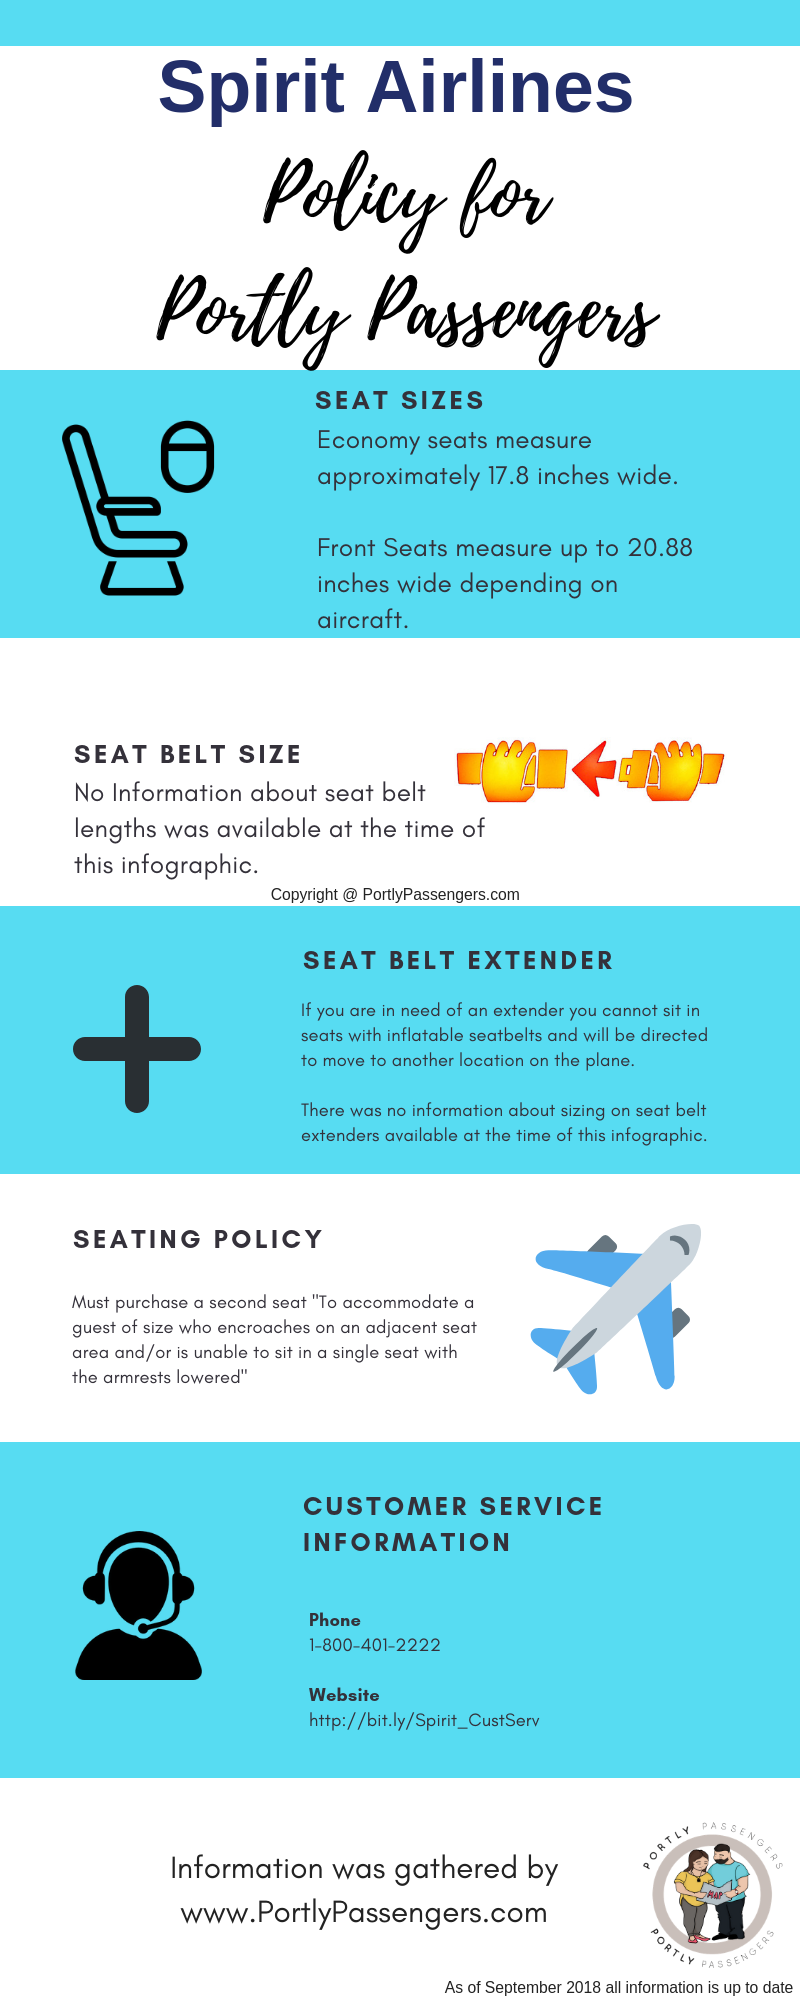 Spirit Airlines Policy for Portly Passengers Passenger